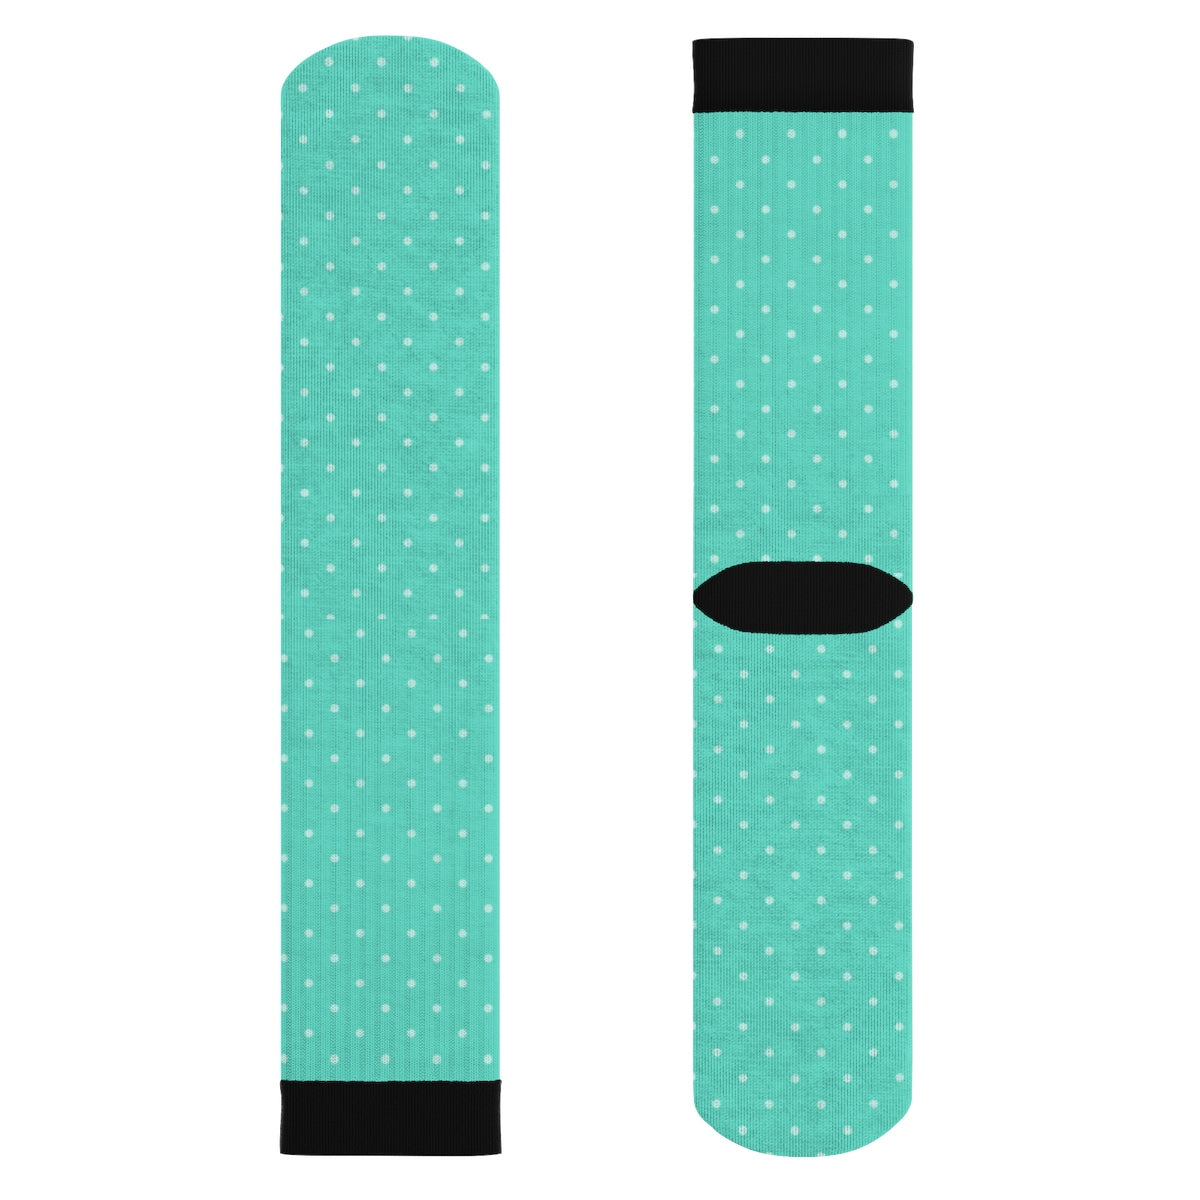 Teal Polka Dot Tube Socks - Onesize - All Over Prints